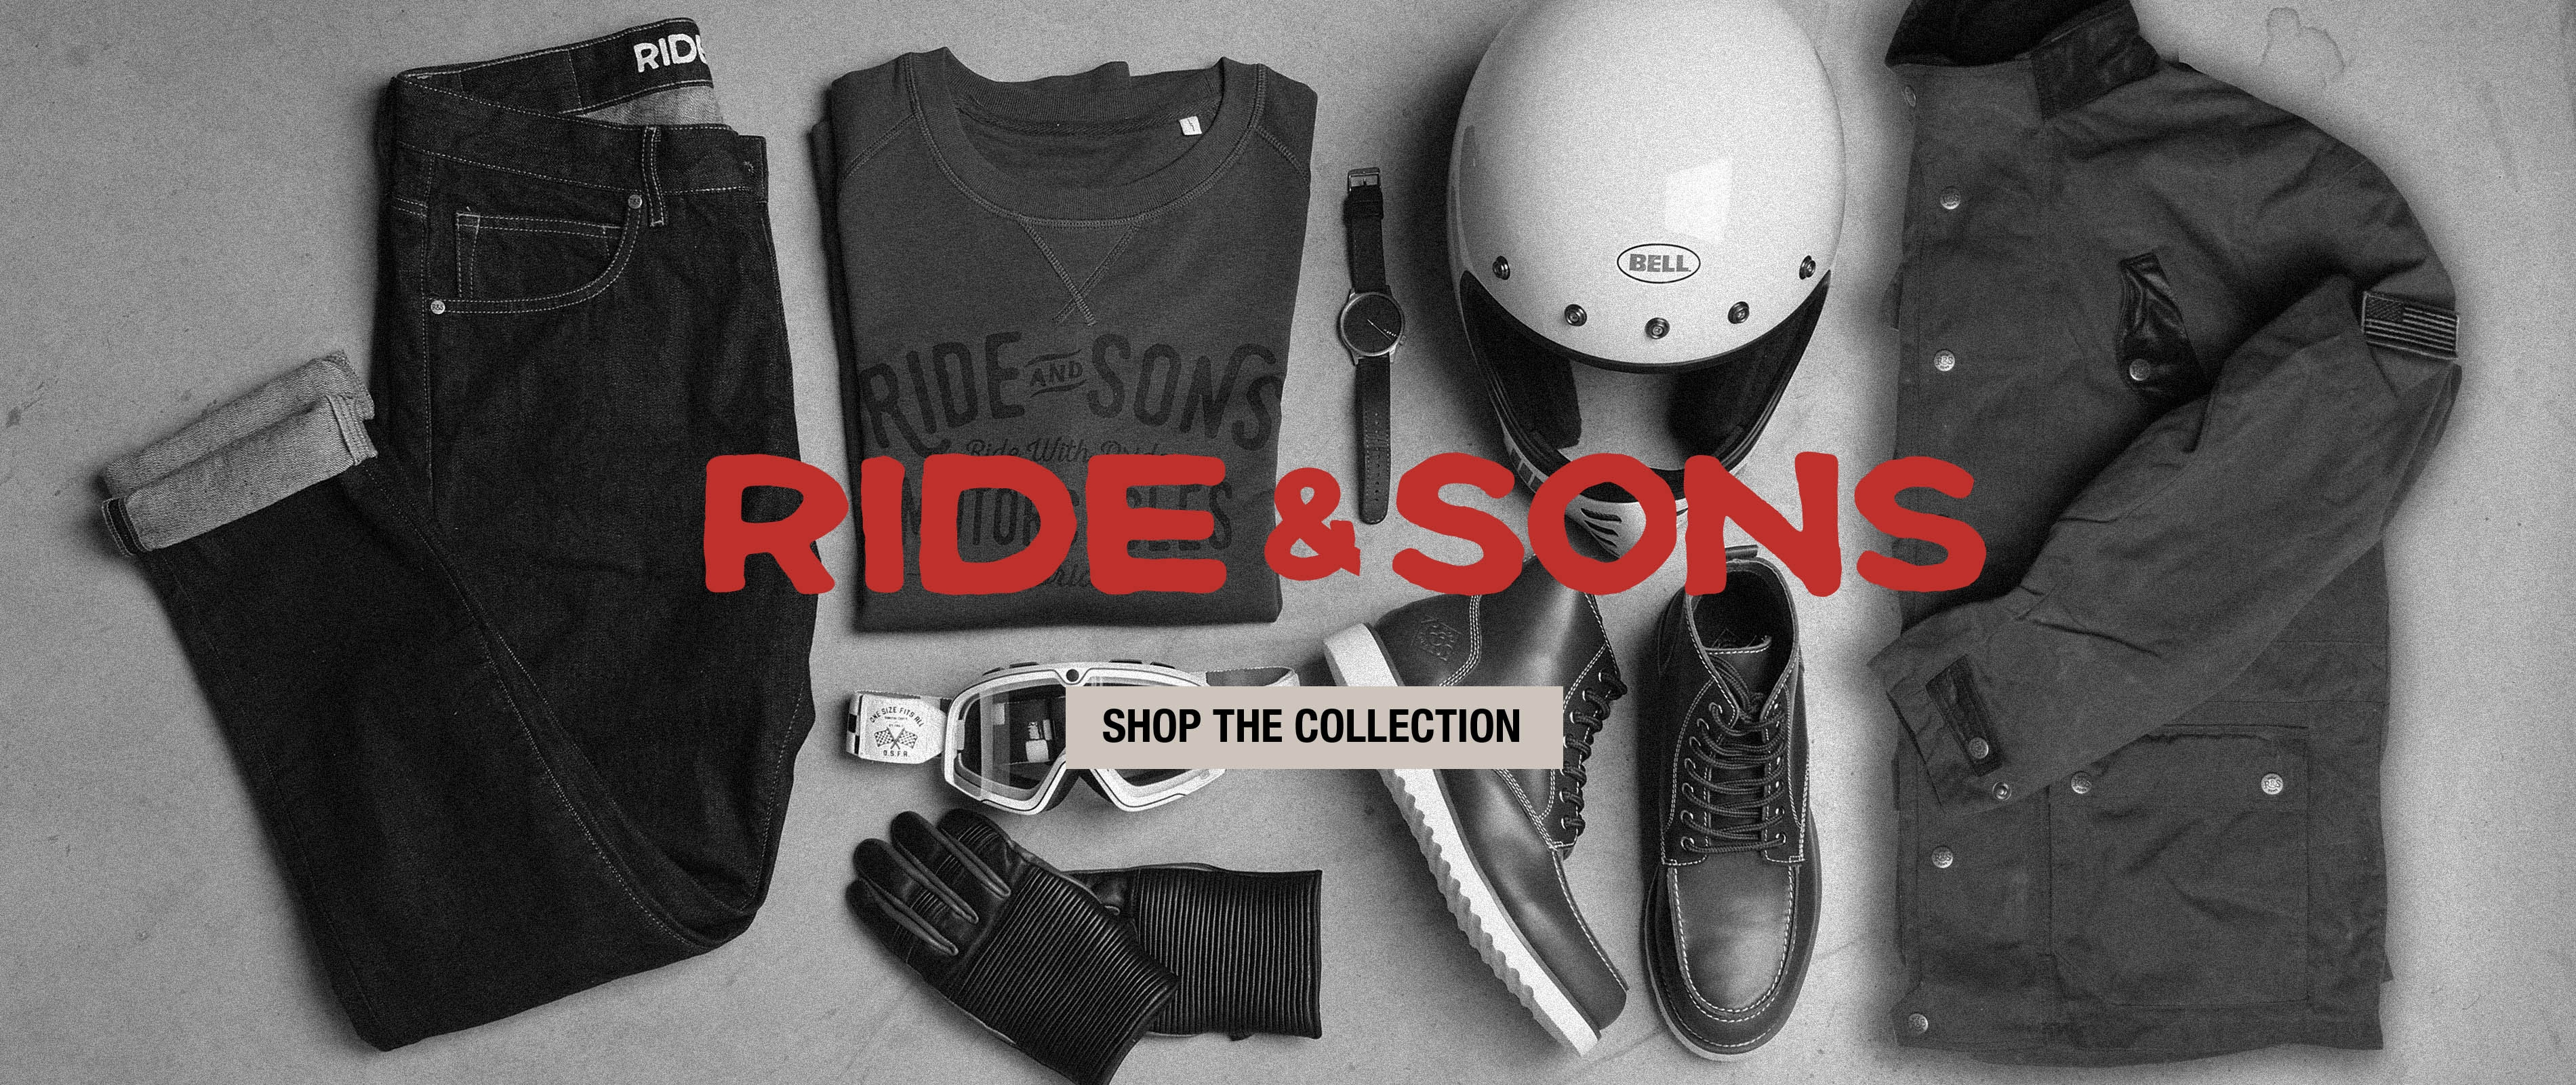 RIDE AND SONS - SHOP THE COLLECTION